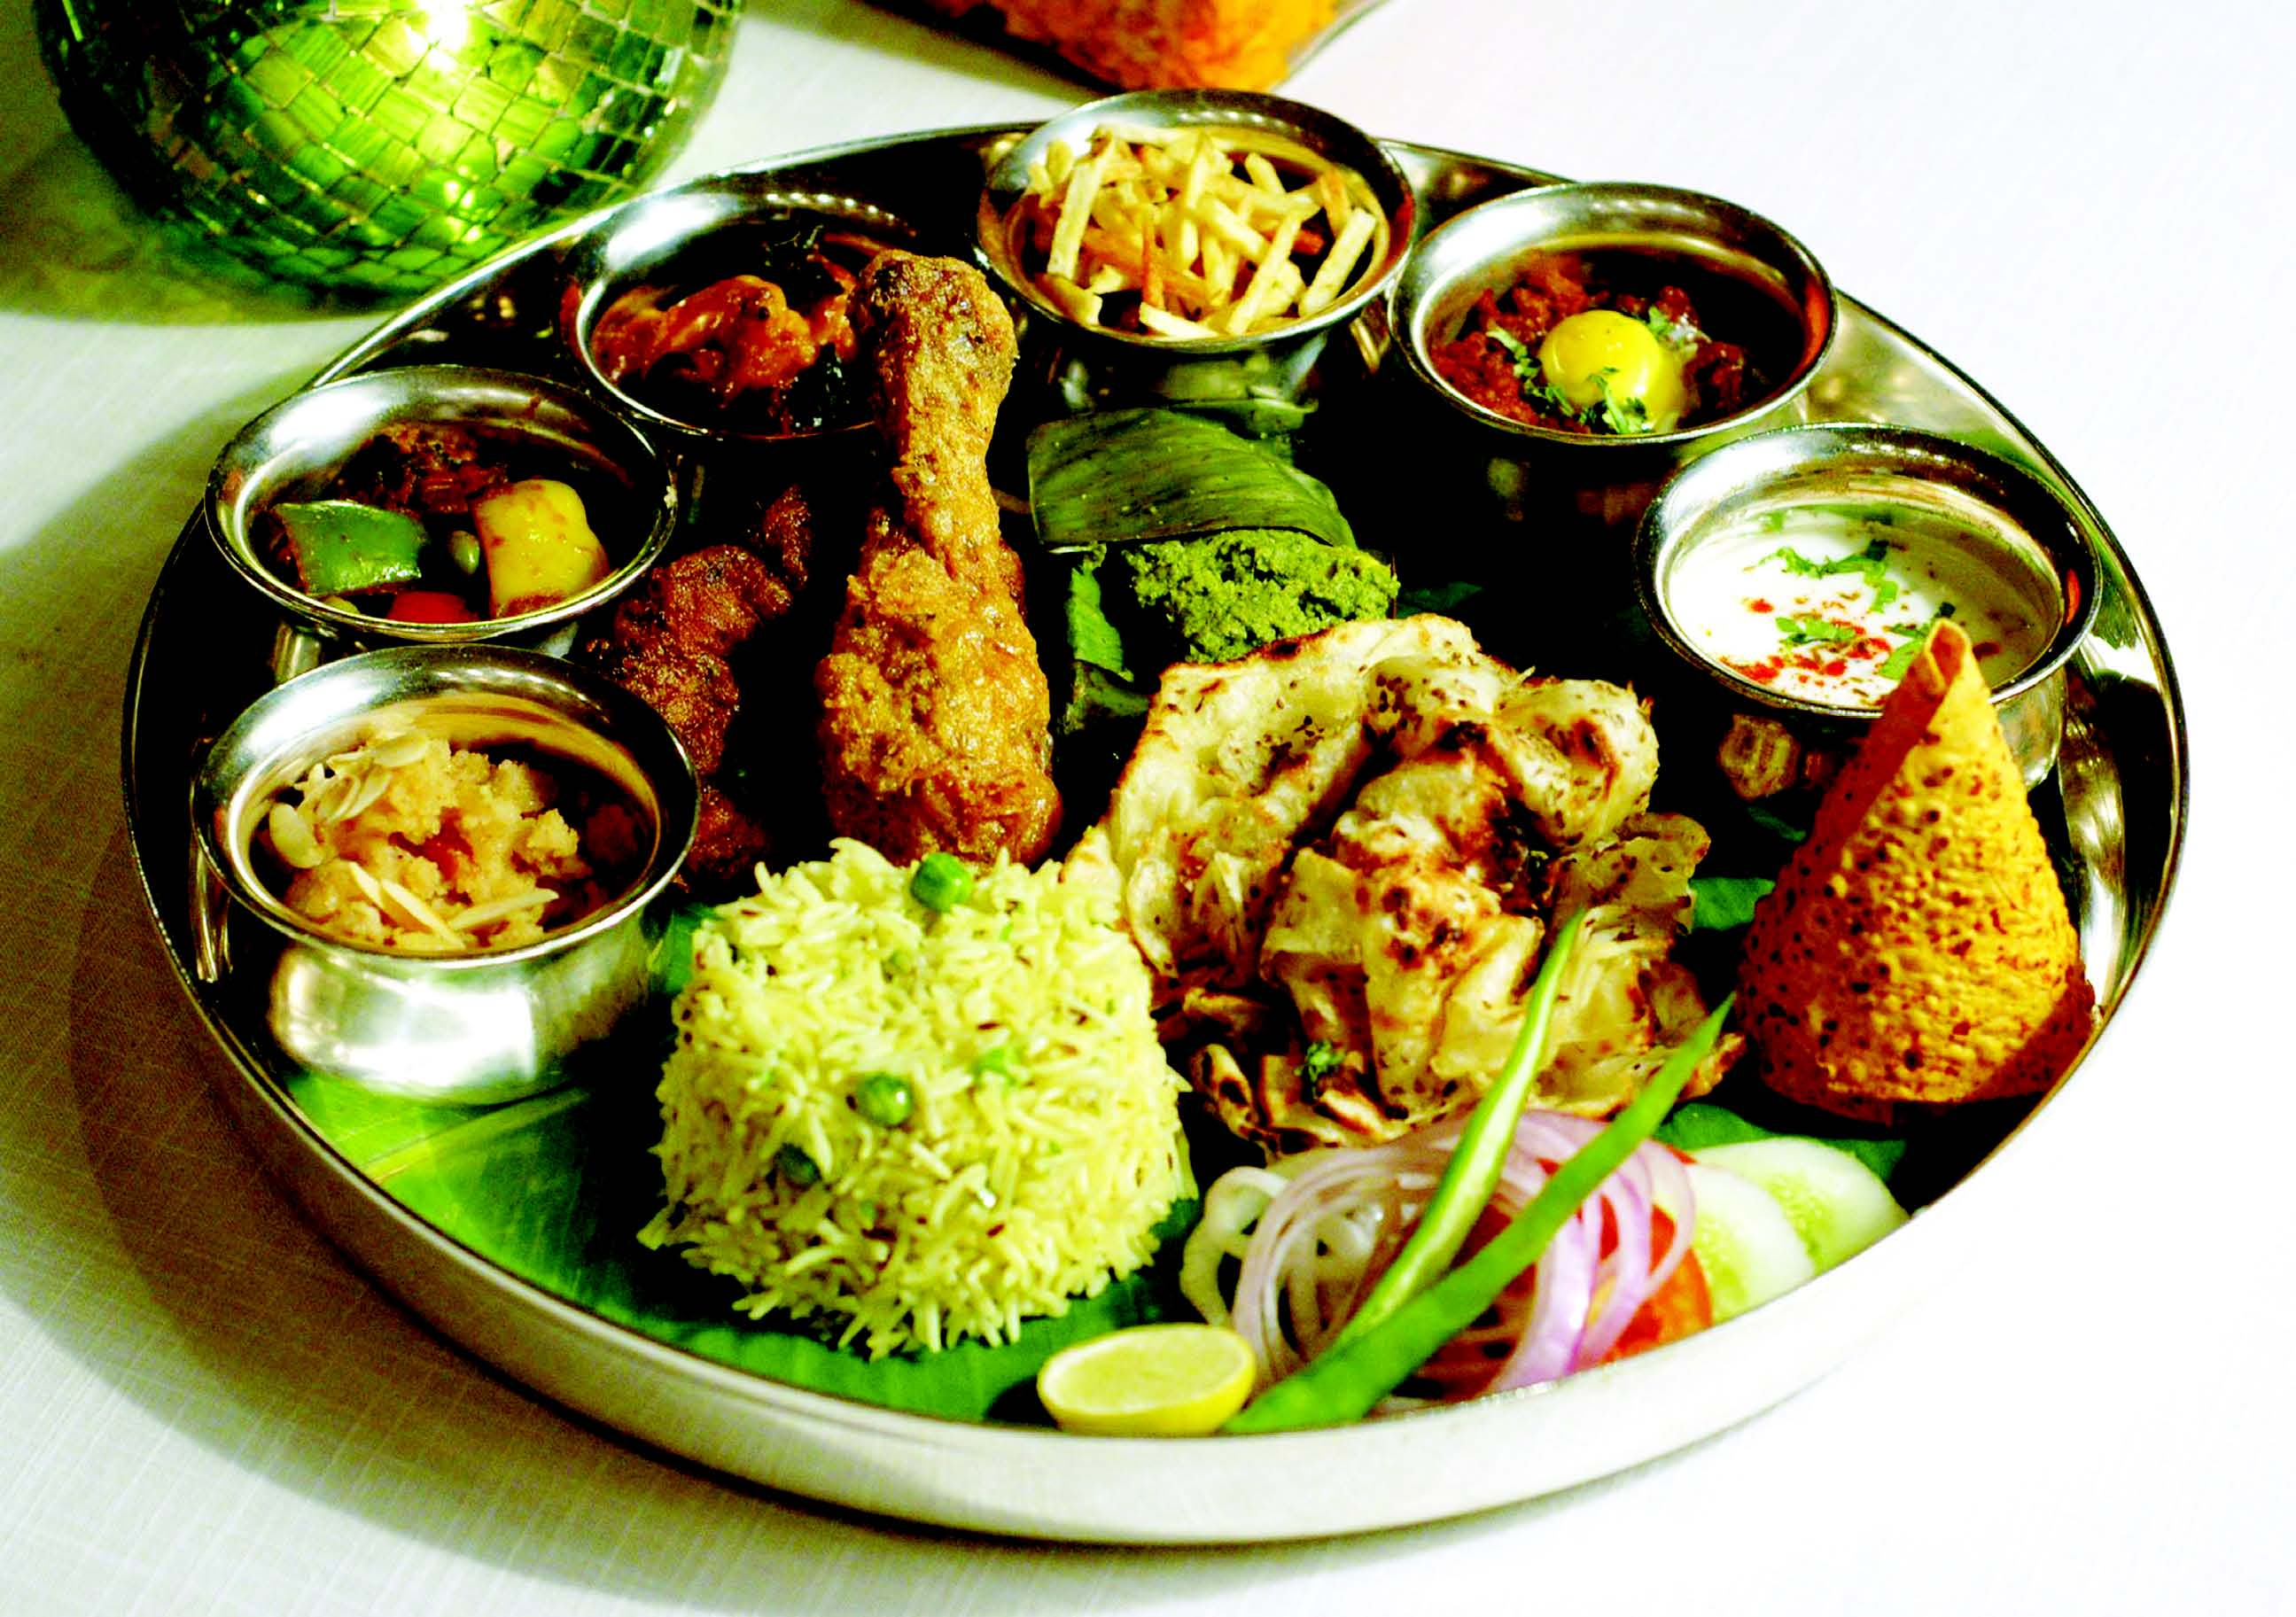 Hospitality Biz India Indian Food Craving For Global